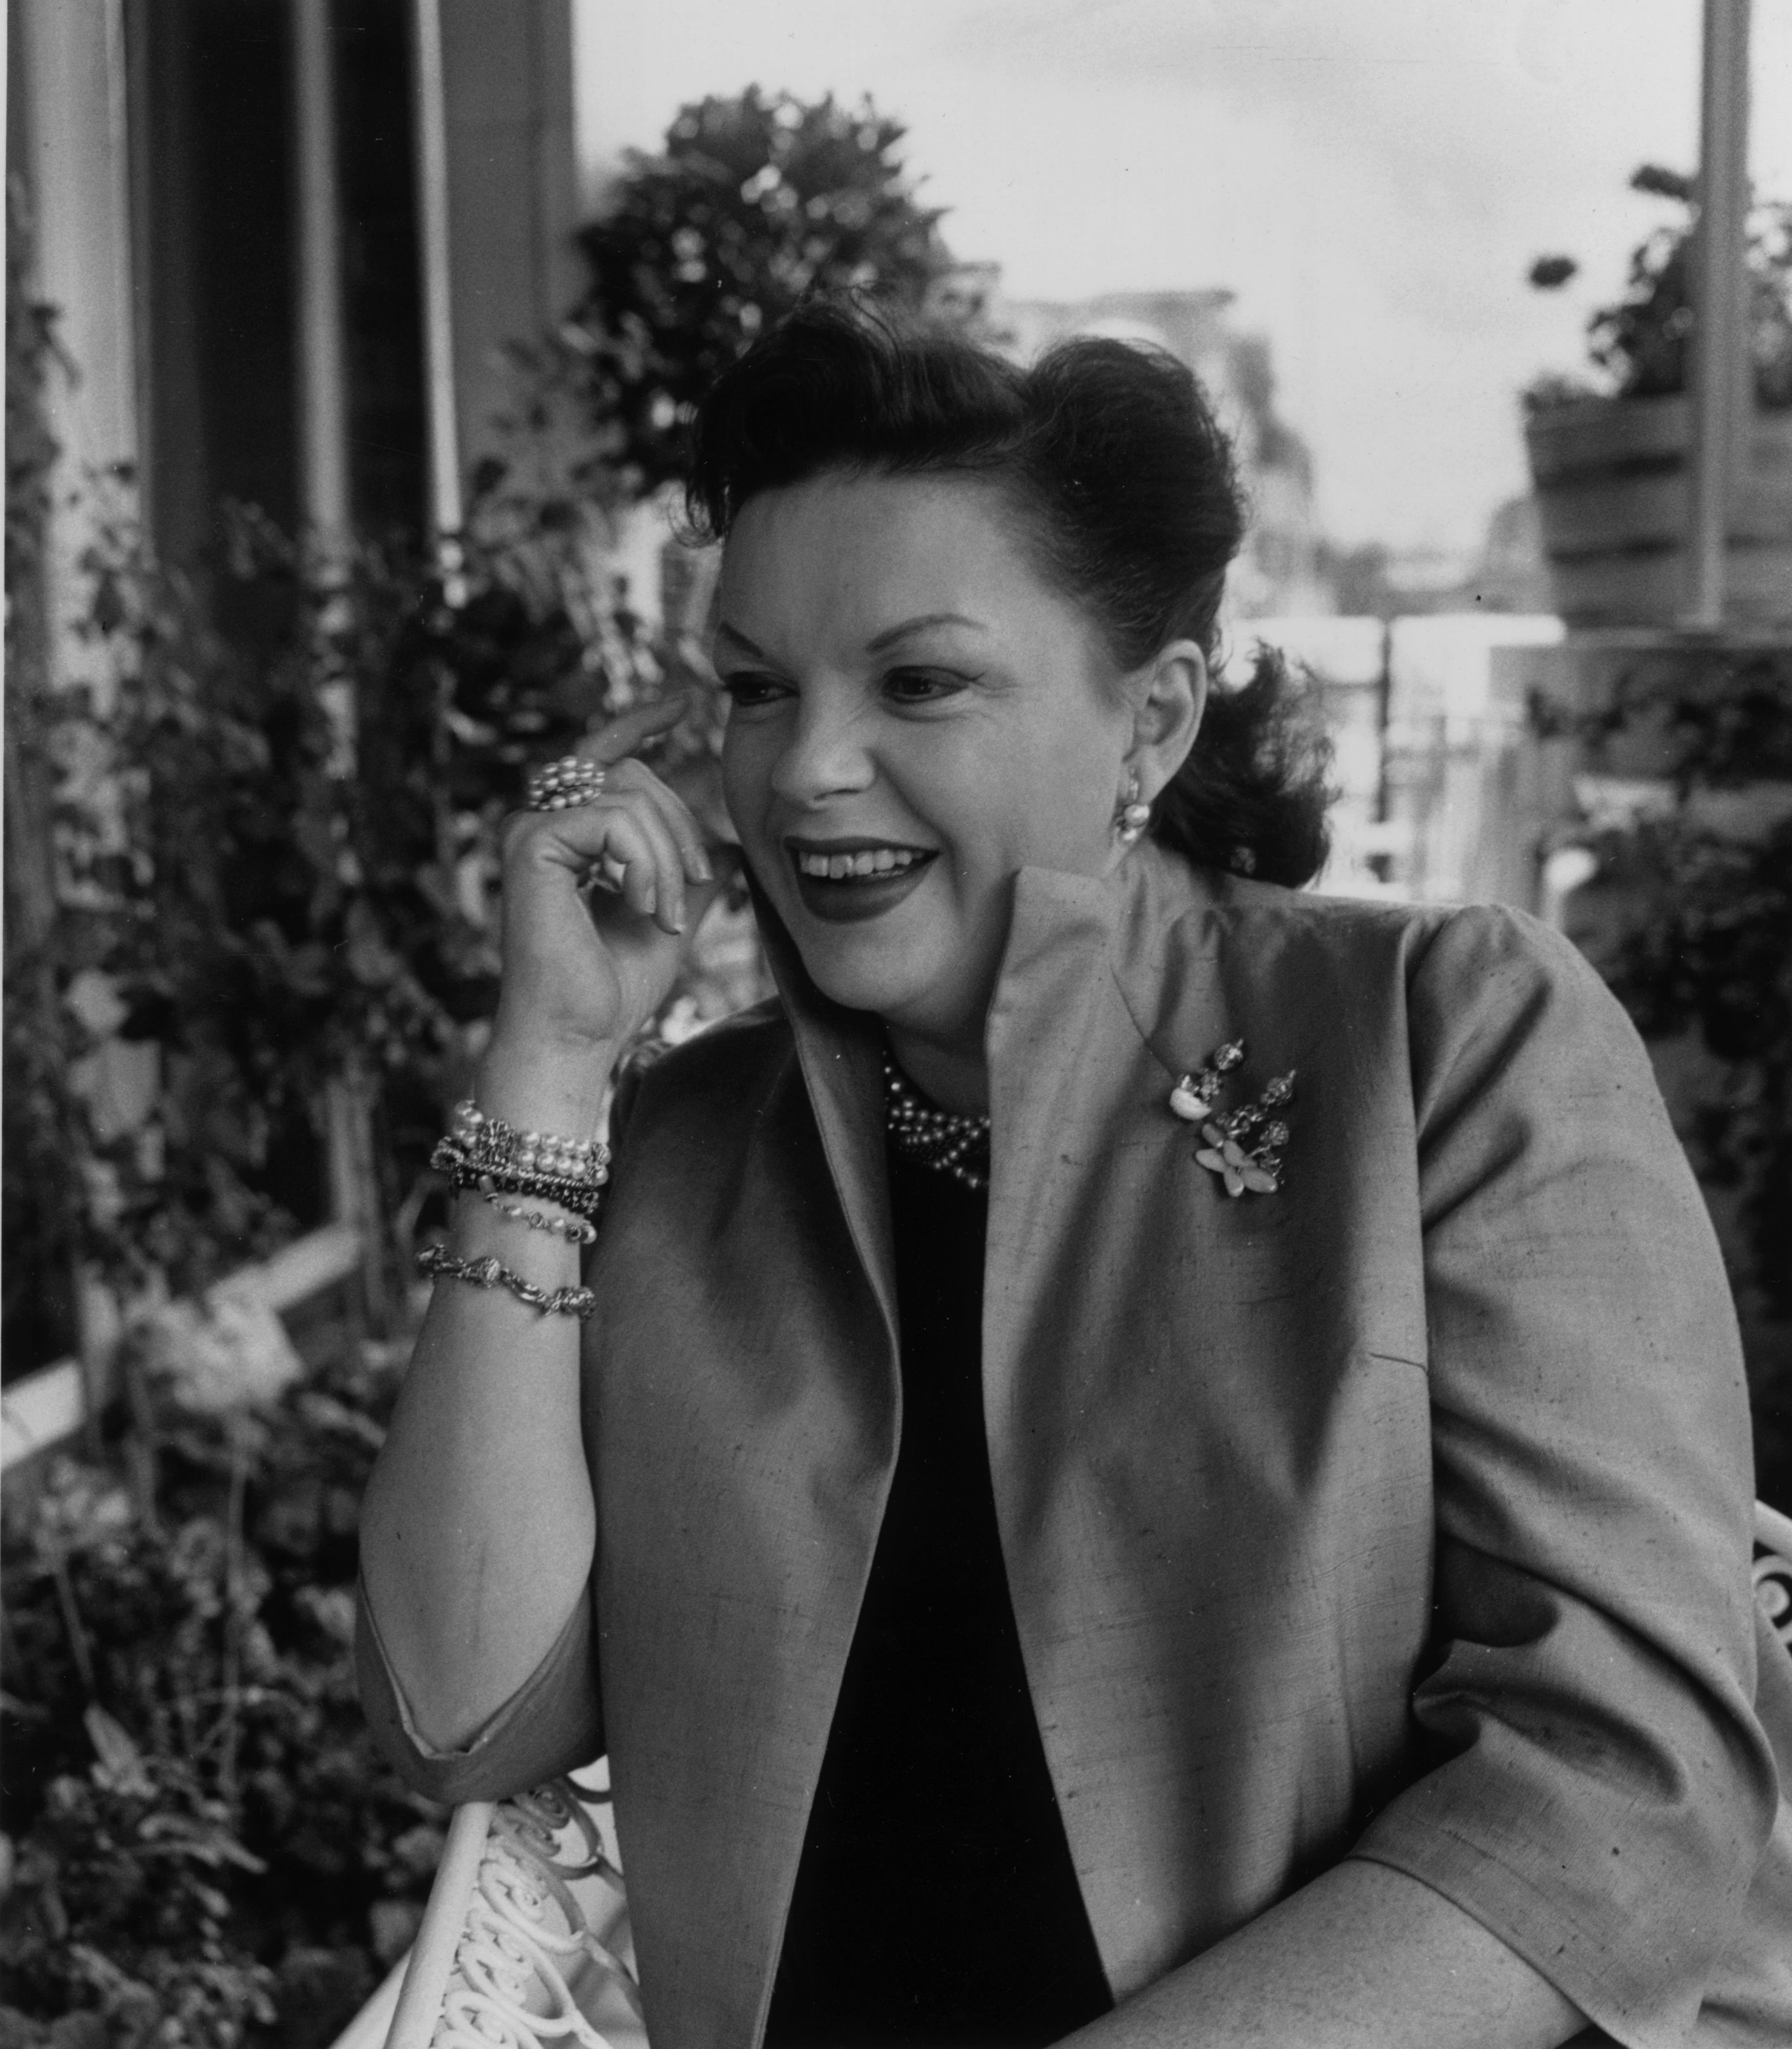 American singer and actress Judy Garland at Mayfair Hotel on August 29, 1960 | Photo: Getty Images